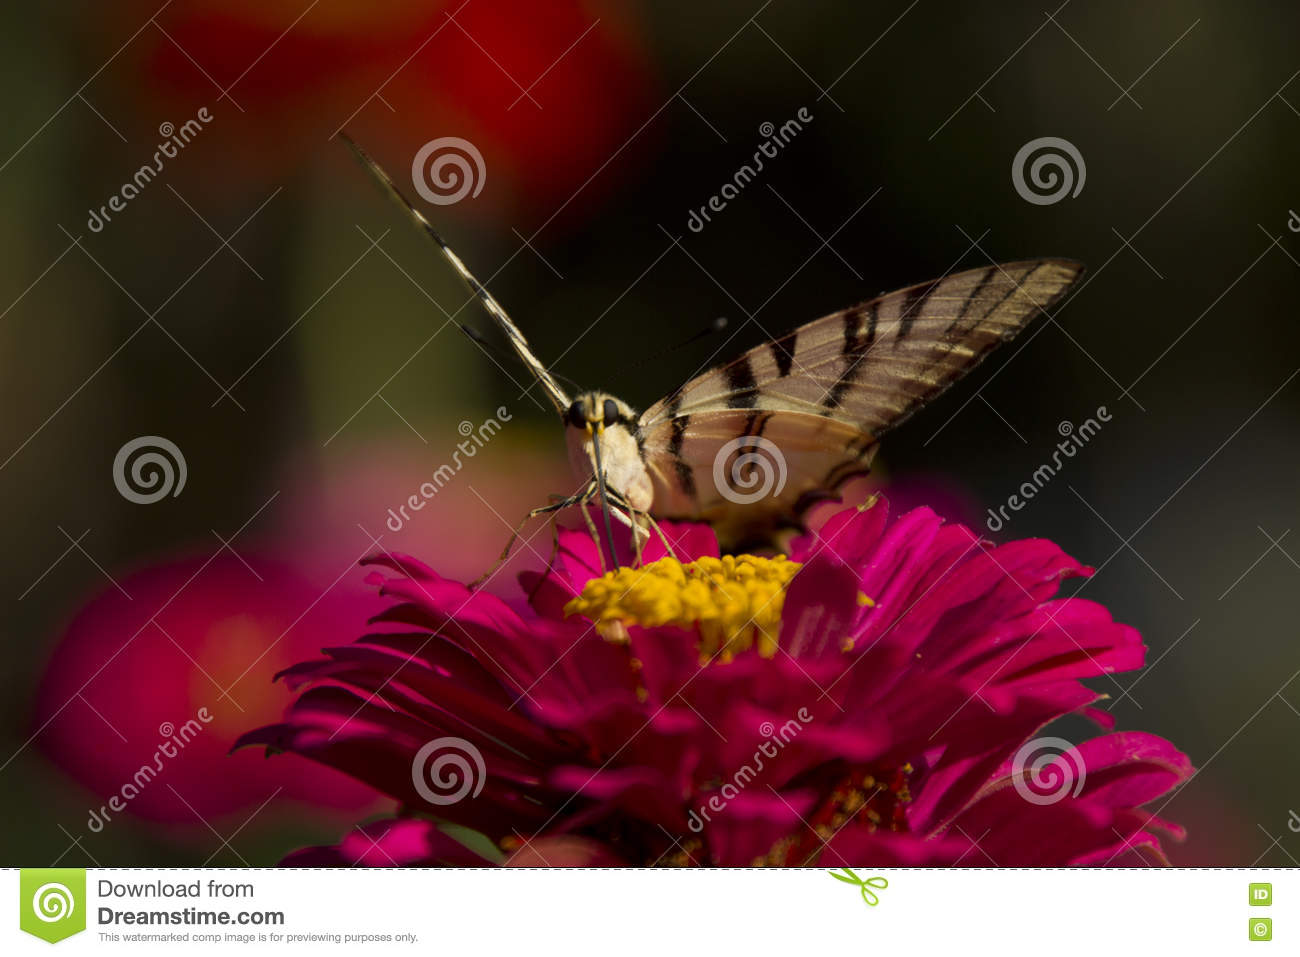 Butterfly sitting on red flower